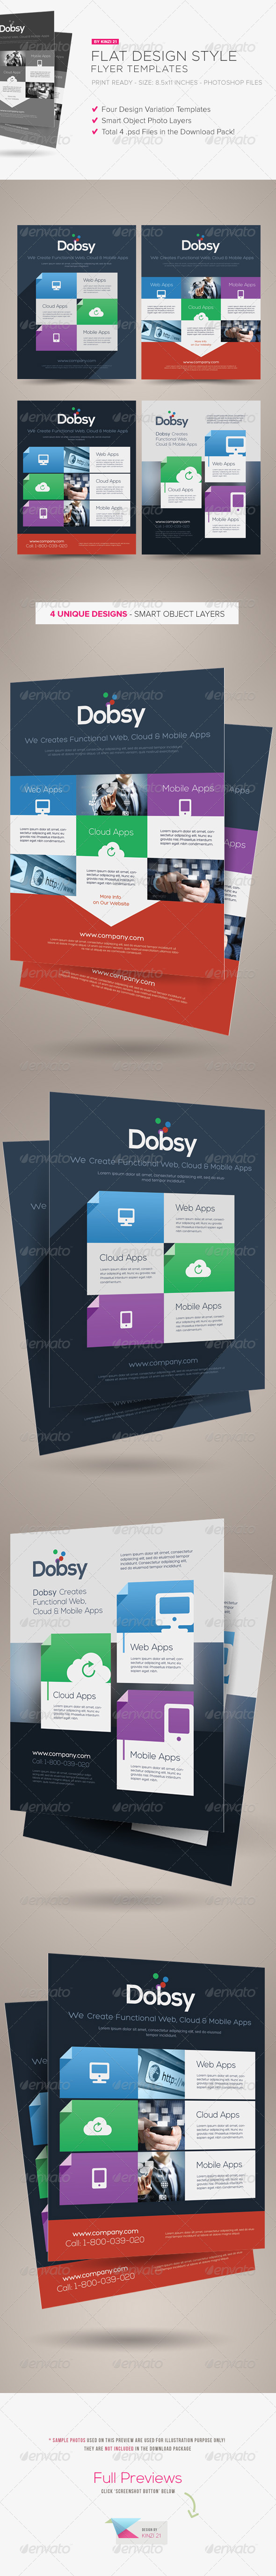 GraphicRiver Flat Design Style Flyers 5271941